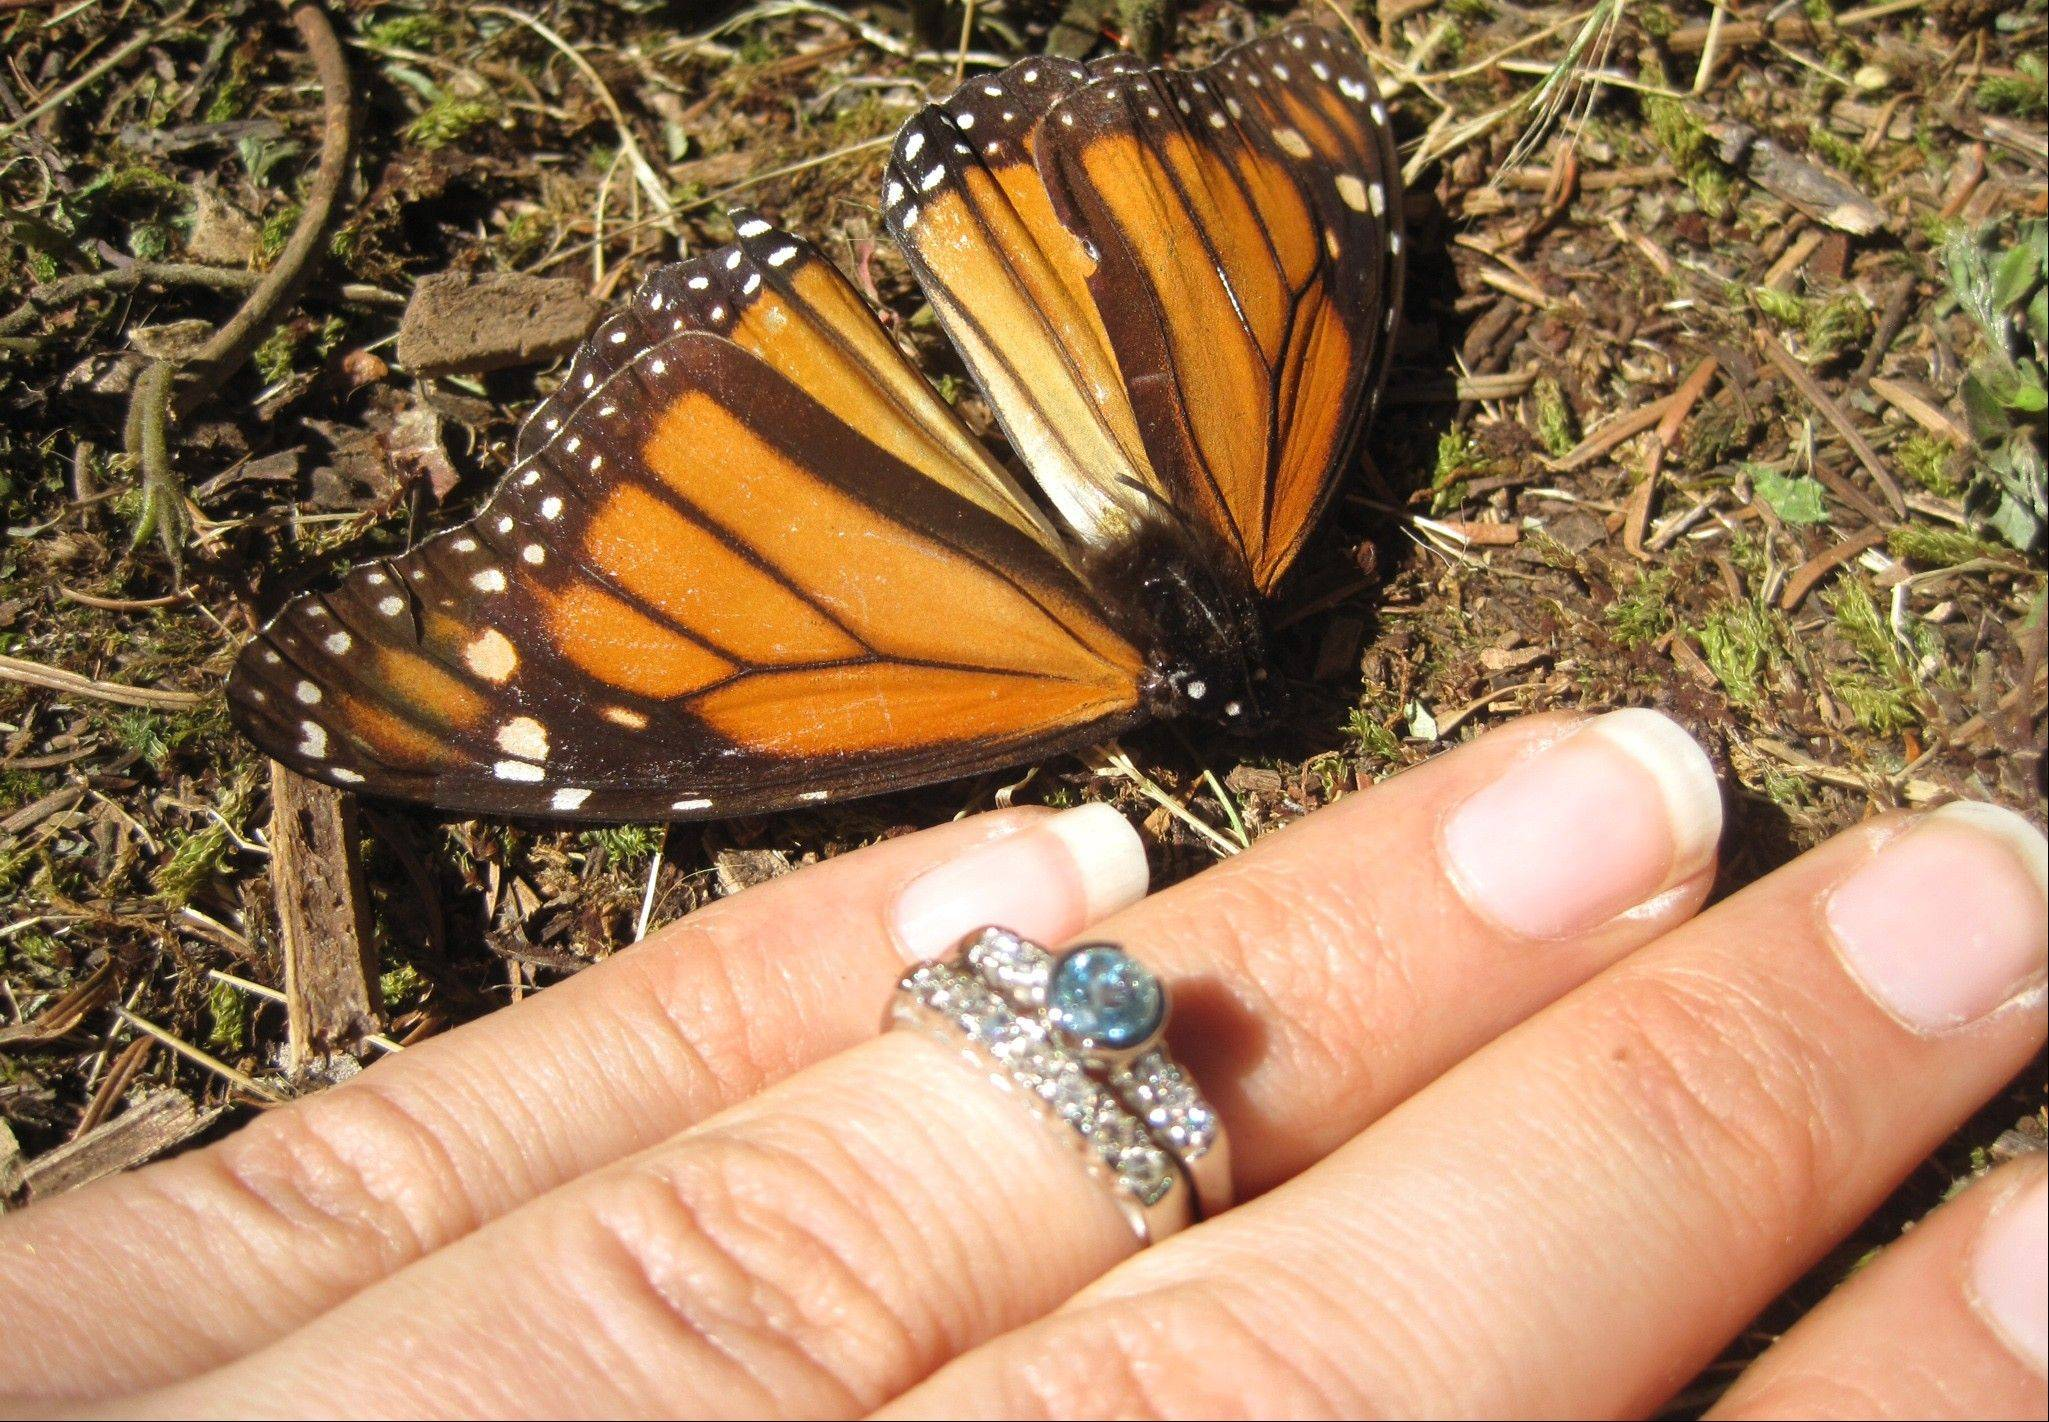 Samantha Goldberger showing off her engagement ring next to a Monarch butterfly soon after Jason Skipton proposed to her at El Capulin reserve, near Zitacuaro, Mexico. Skipton found the love of his life 2,000 miles from home in a chance encounter that gave him butterflies.